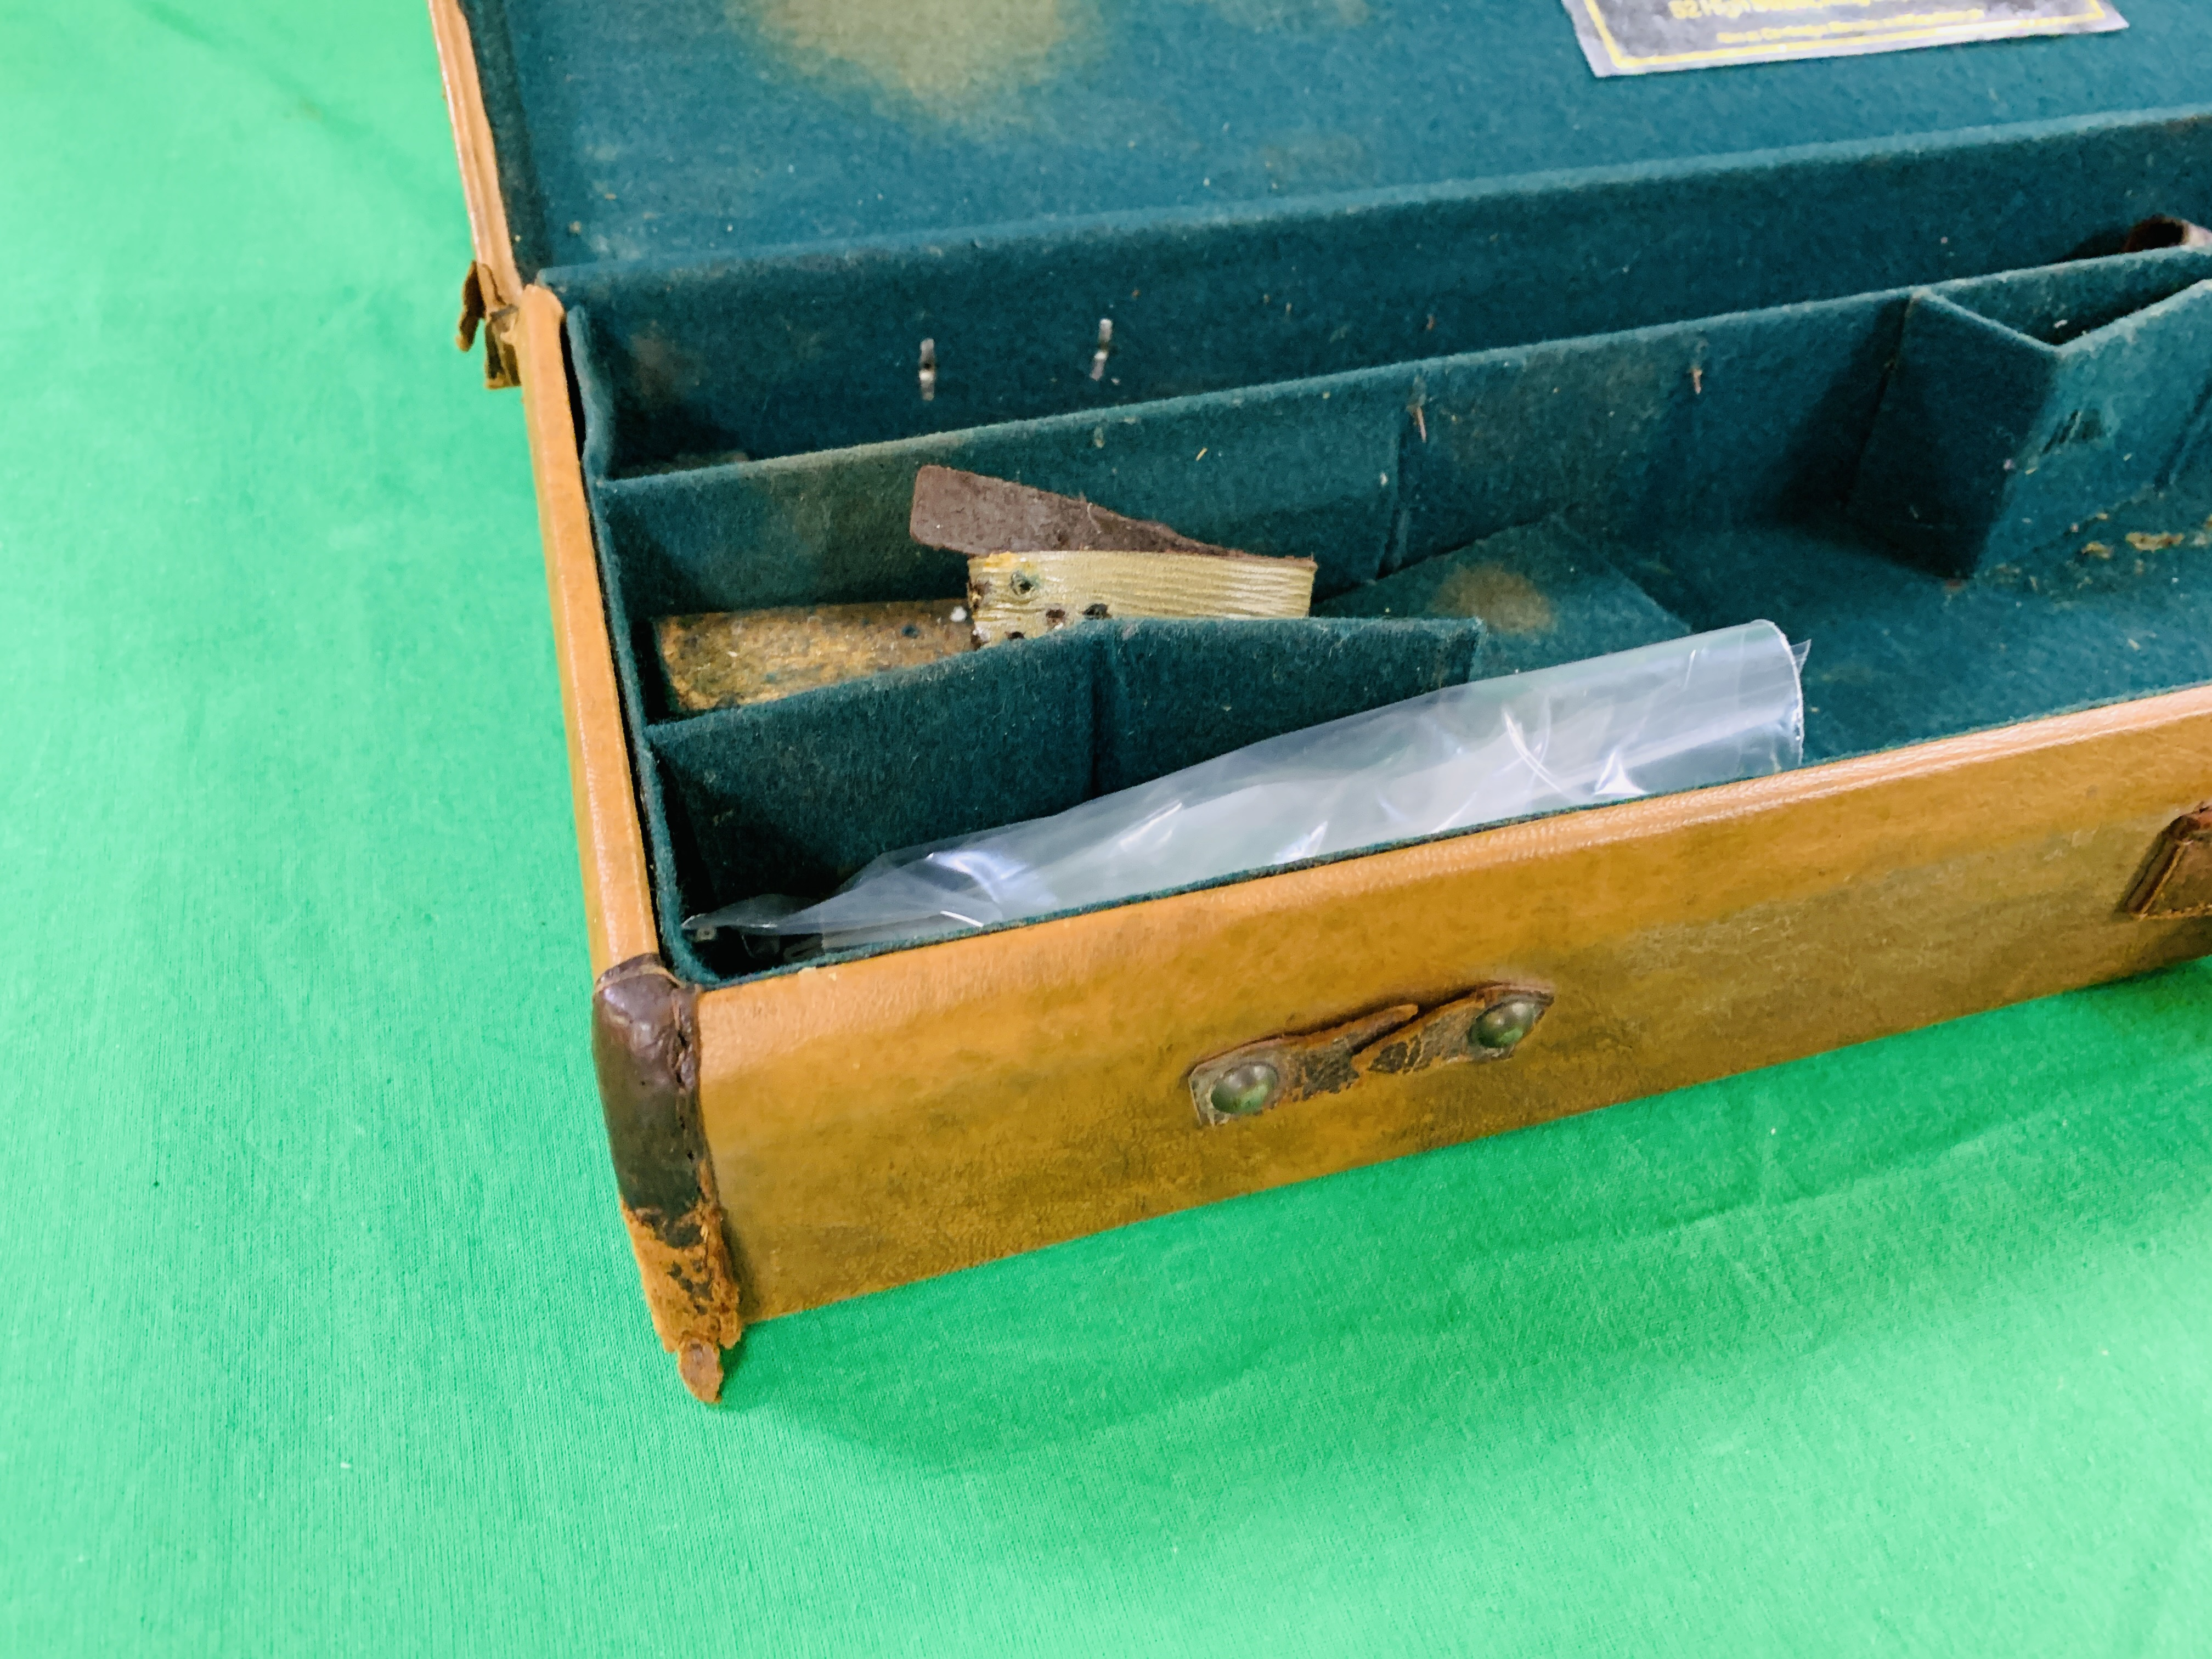 """LEATHERETTE 28 / 30"""" CASE WITH GALLYON OF KINGFISHER LABEL INSIDE - Image 4 of 11"""